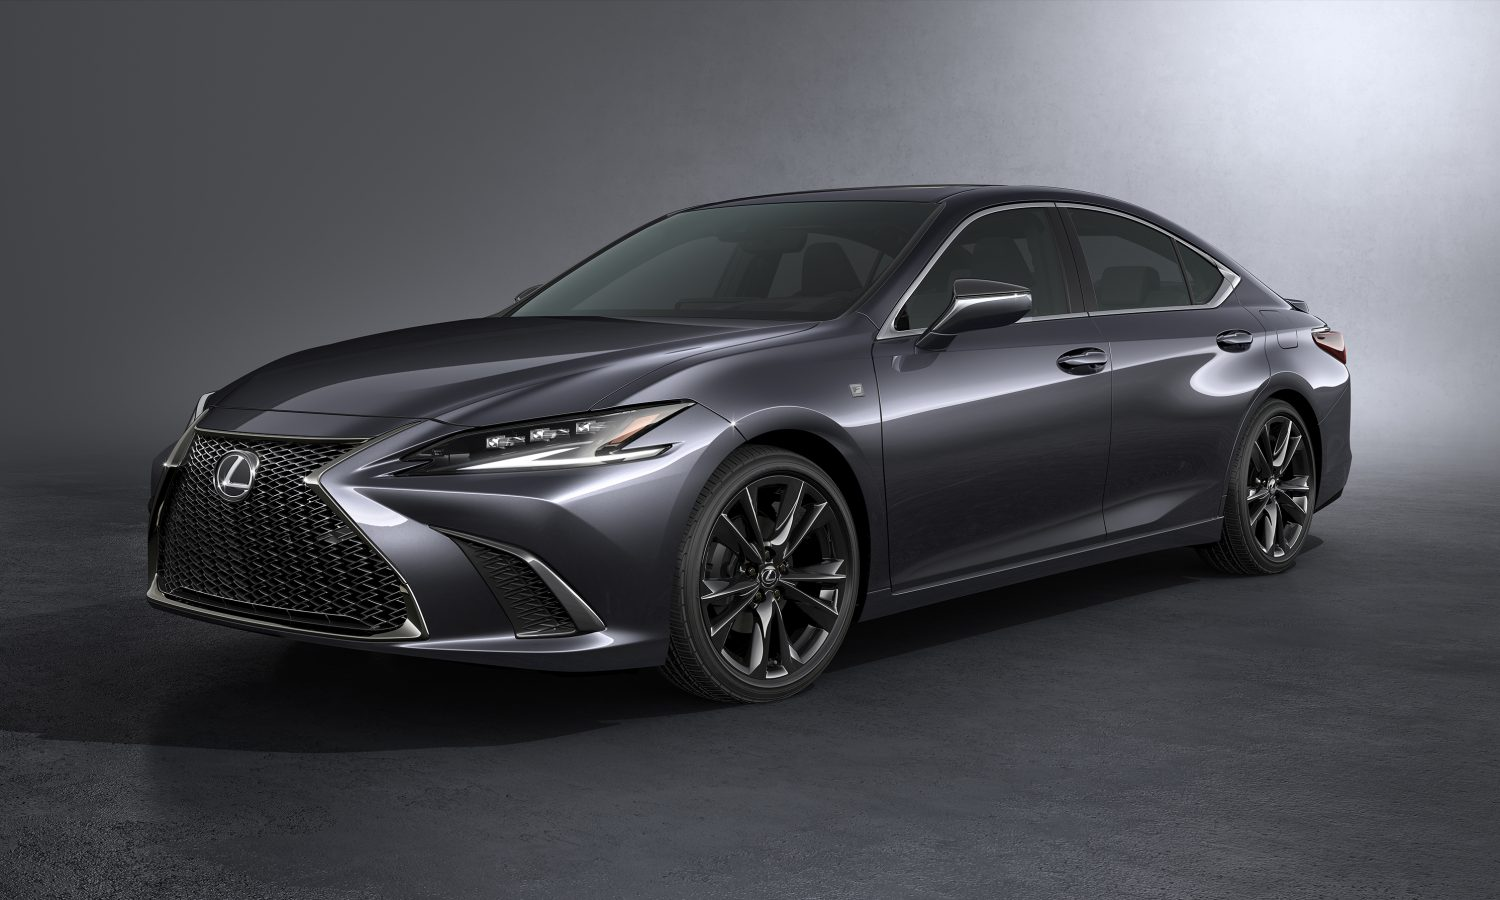 2022 LEXUS ES: THE QUINTESSENTIAL LUXURY SEDAN IS REFRESHED INSIDE AND OUT